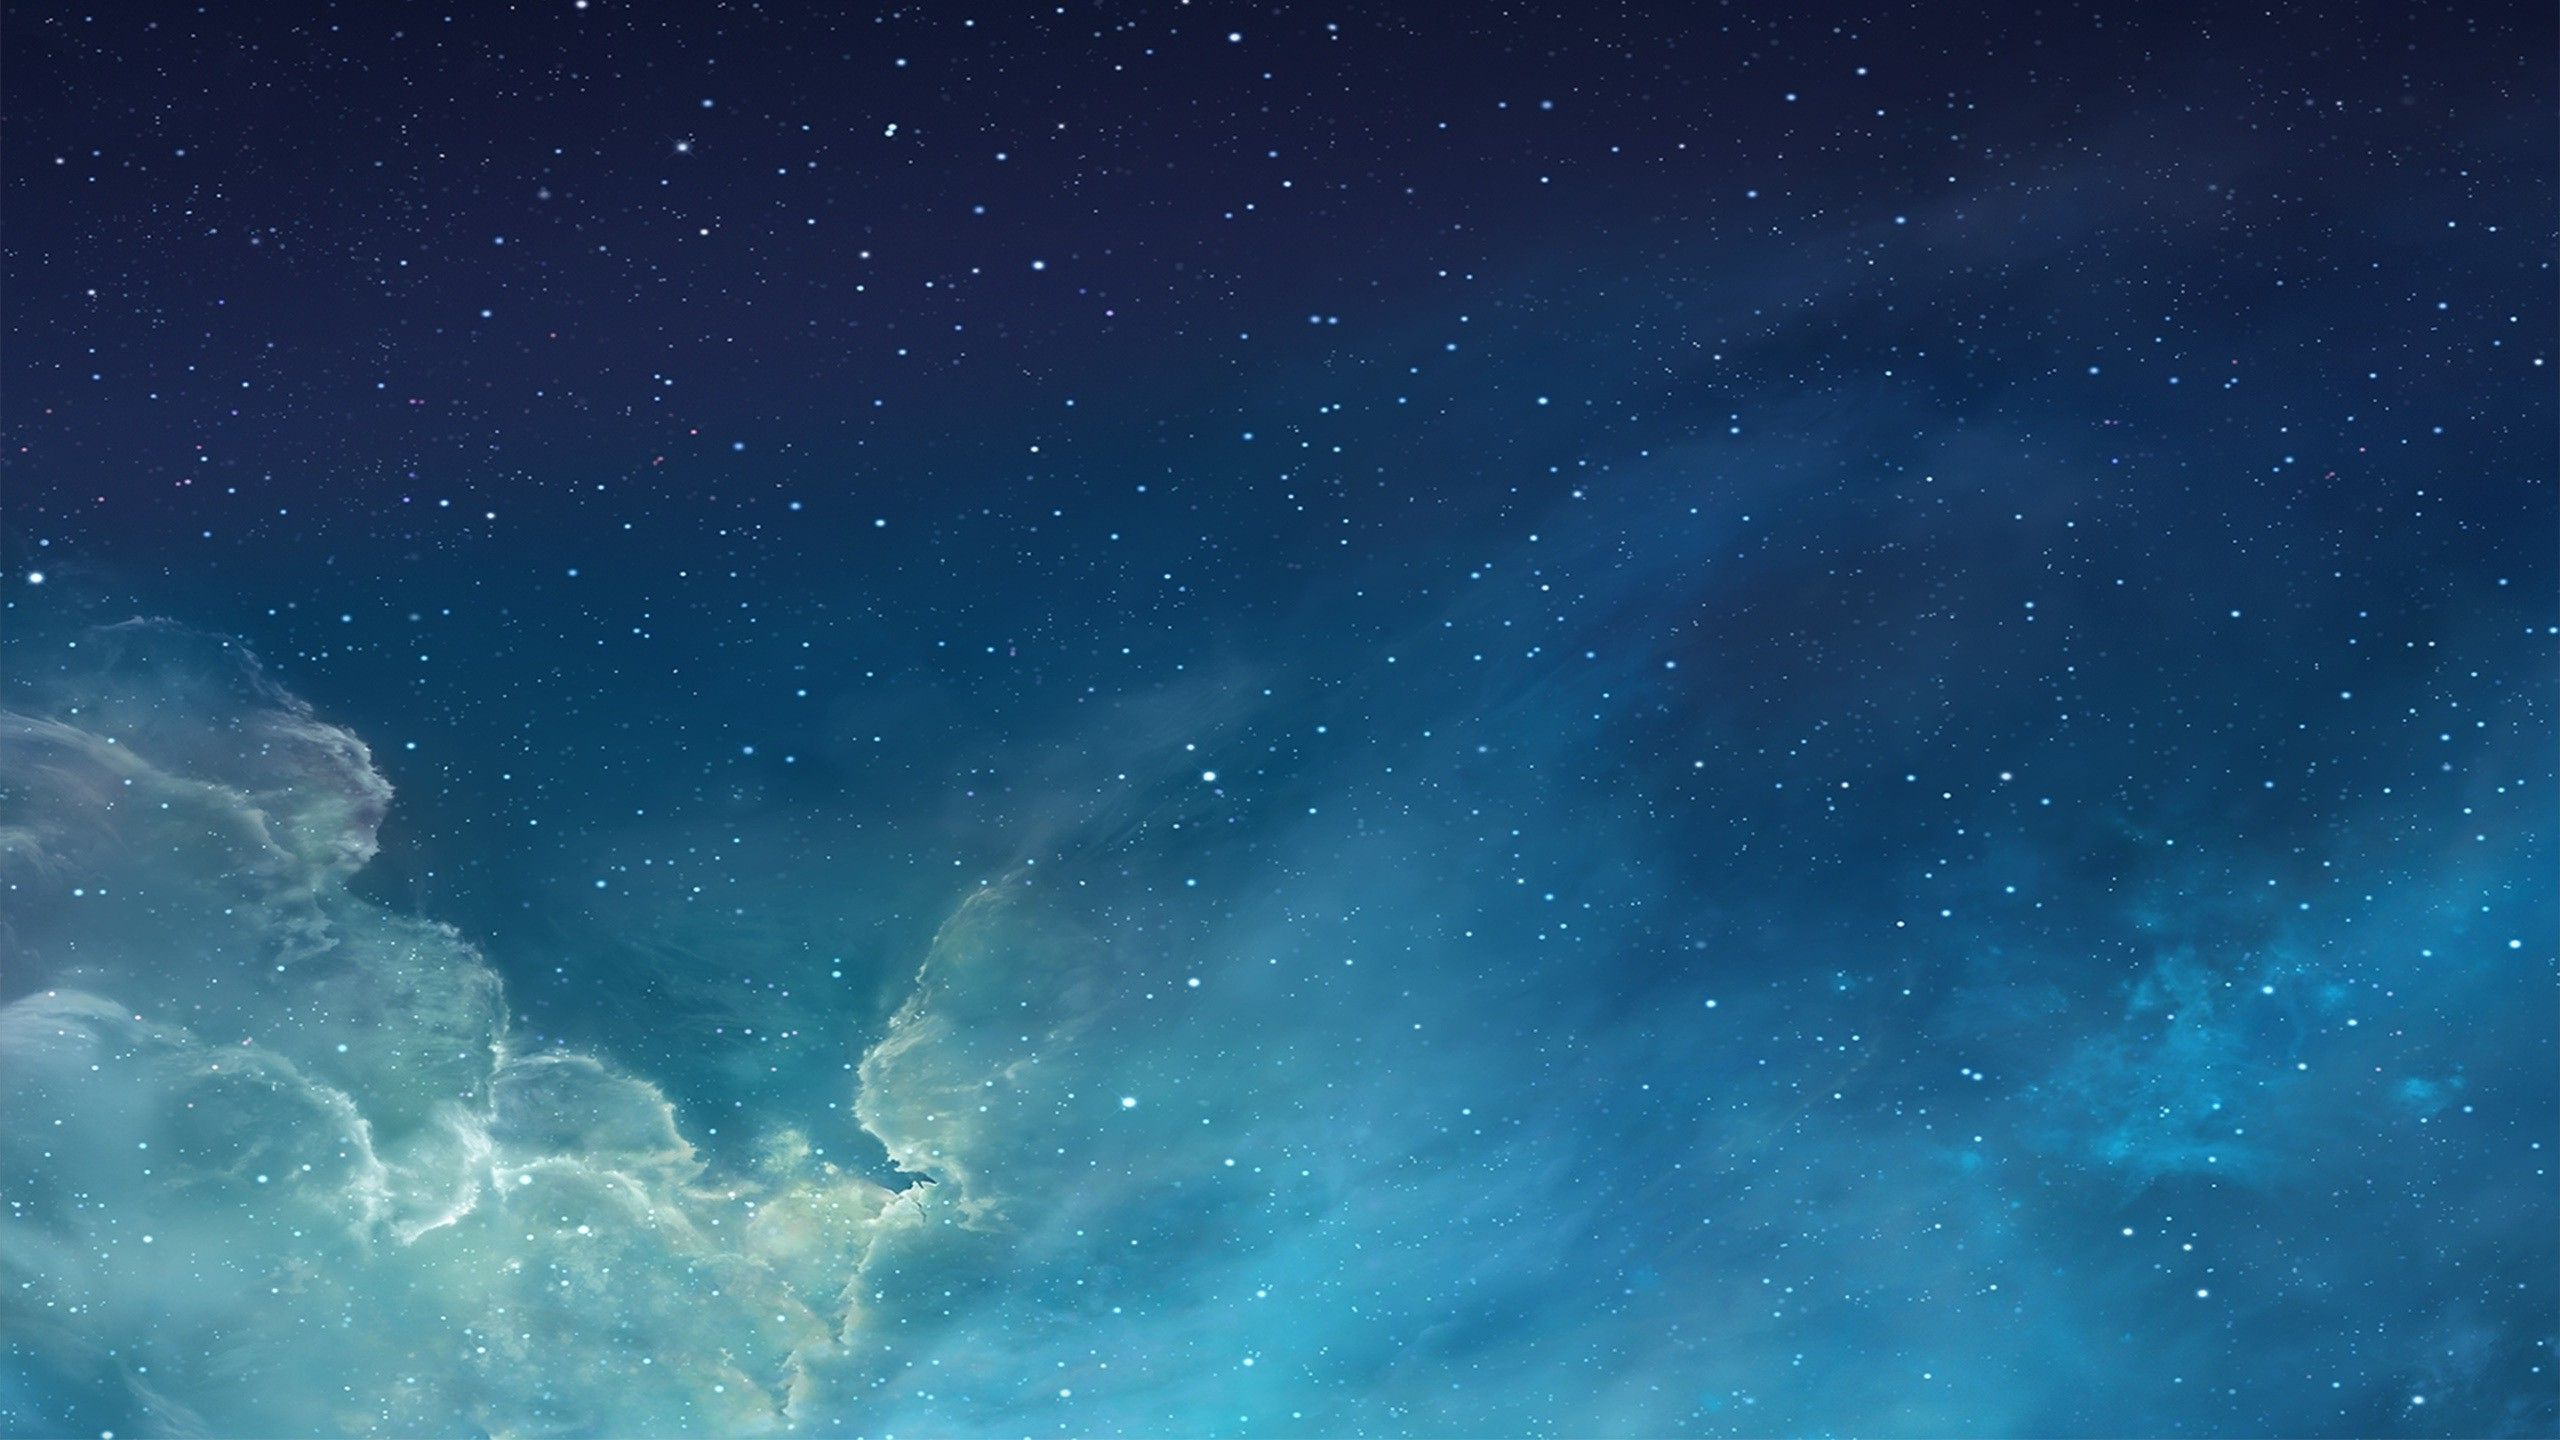 Sky Star Wallpaper